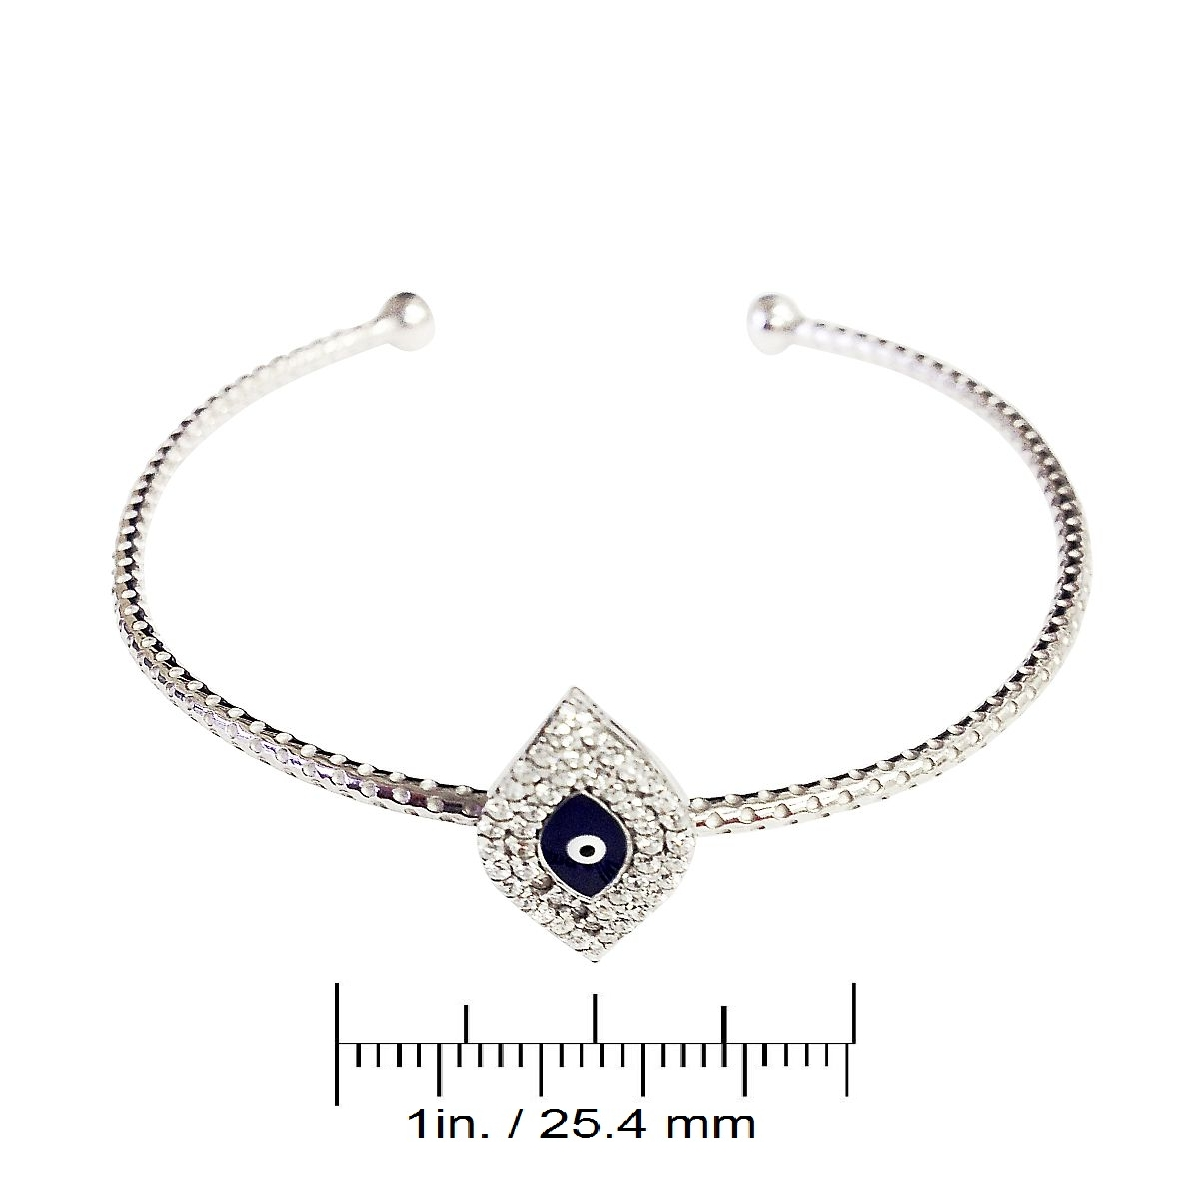 Sterling Silver Evil Eye Charm Bangle Made in Turkey 9356